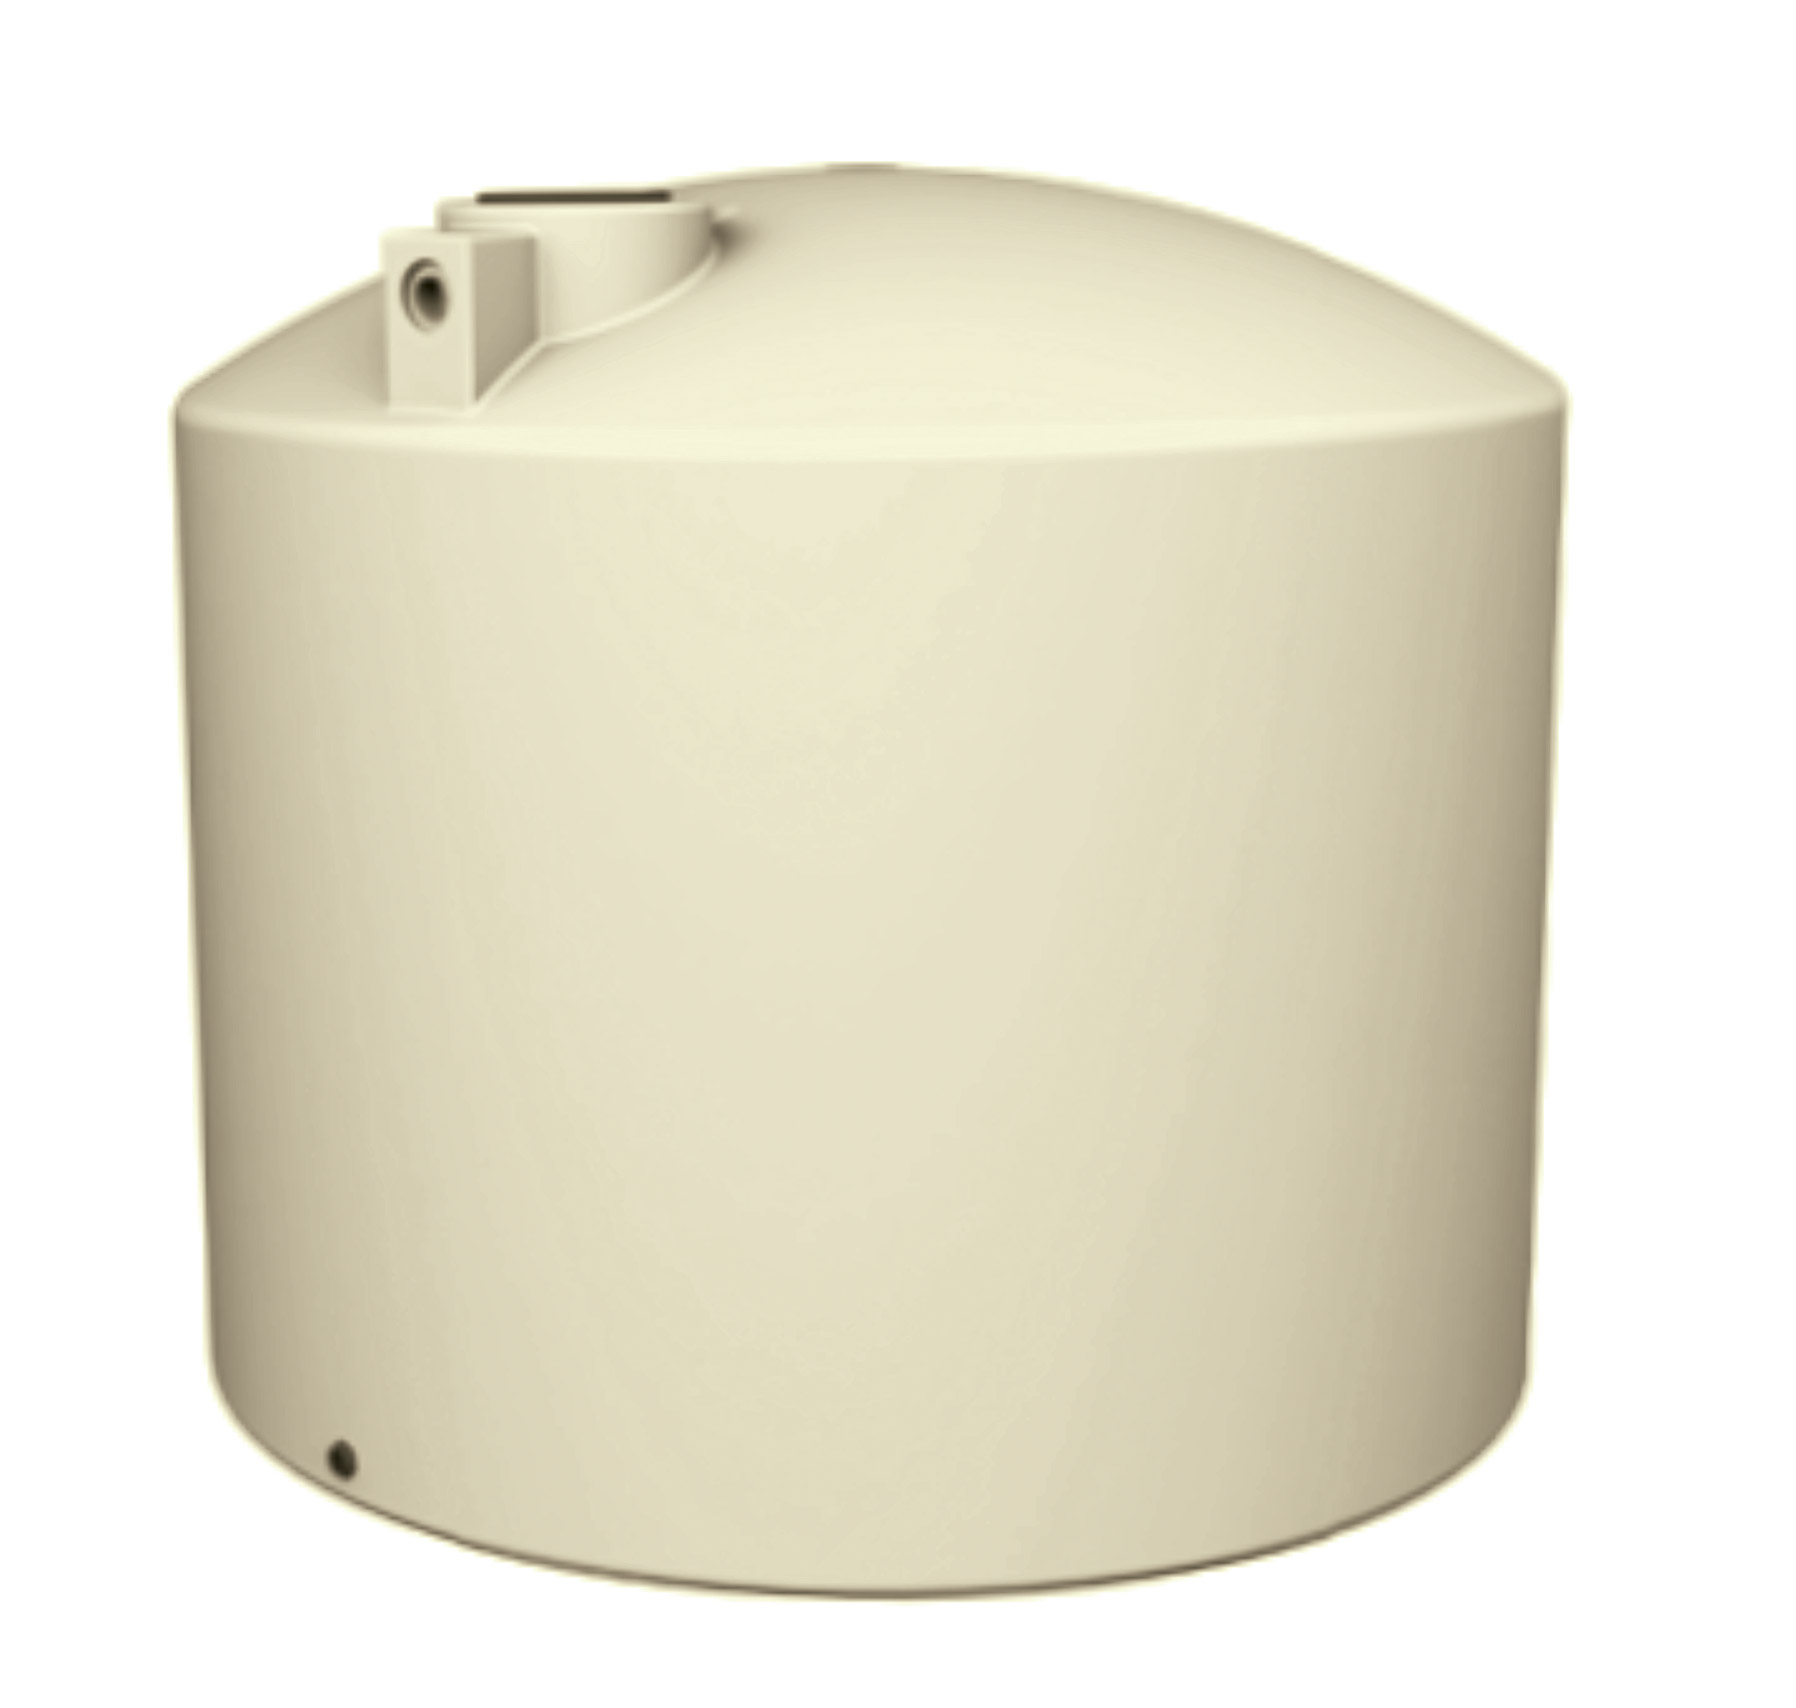 BT22500-T | 22,500L/5,000gal (Tall) Image